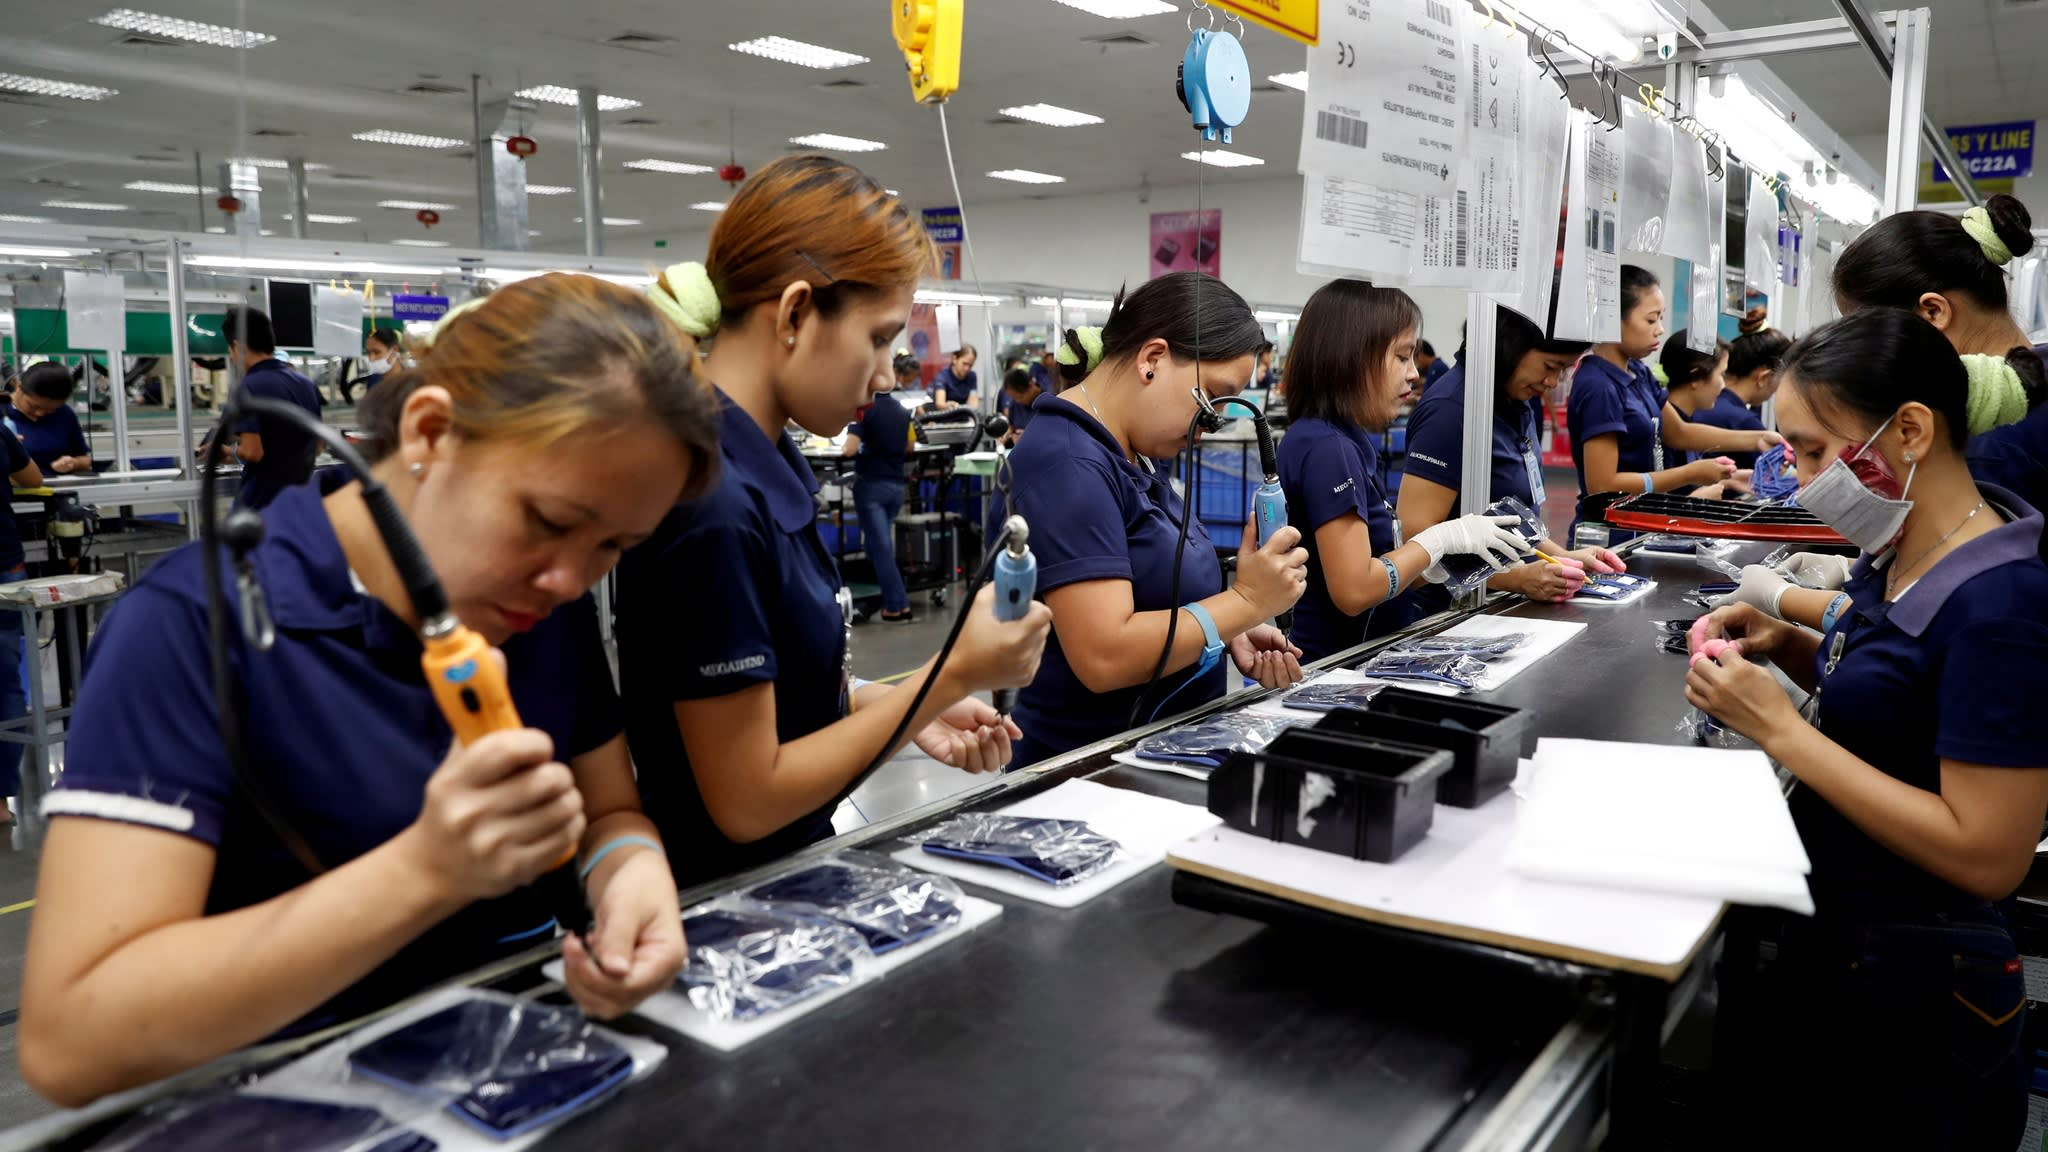 Philippines and India rise in global competitiveness